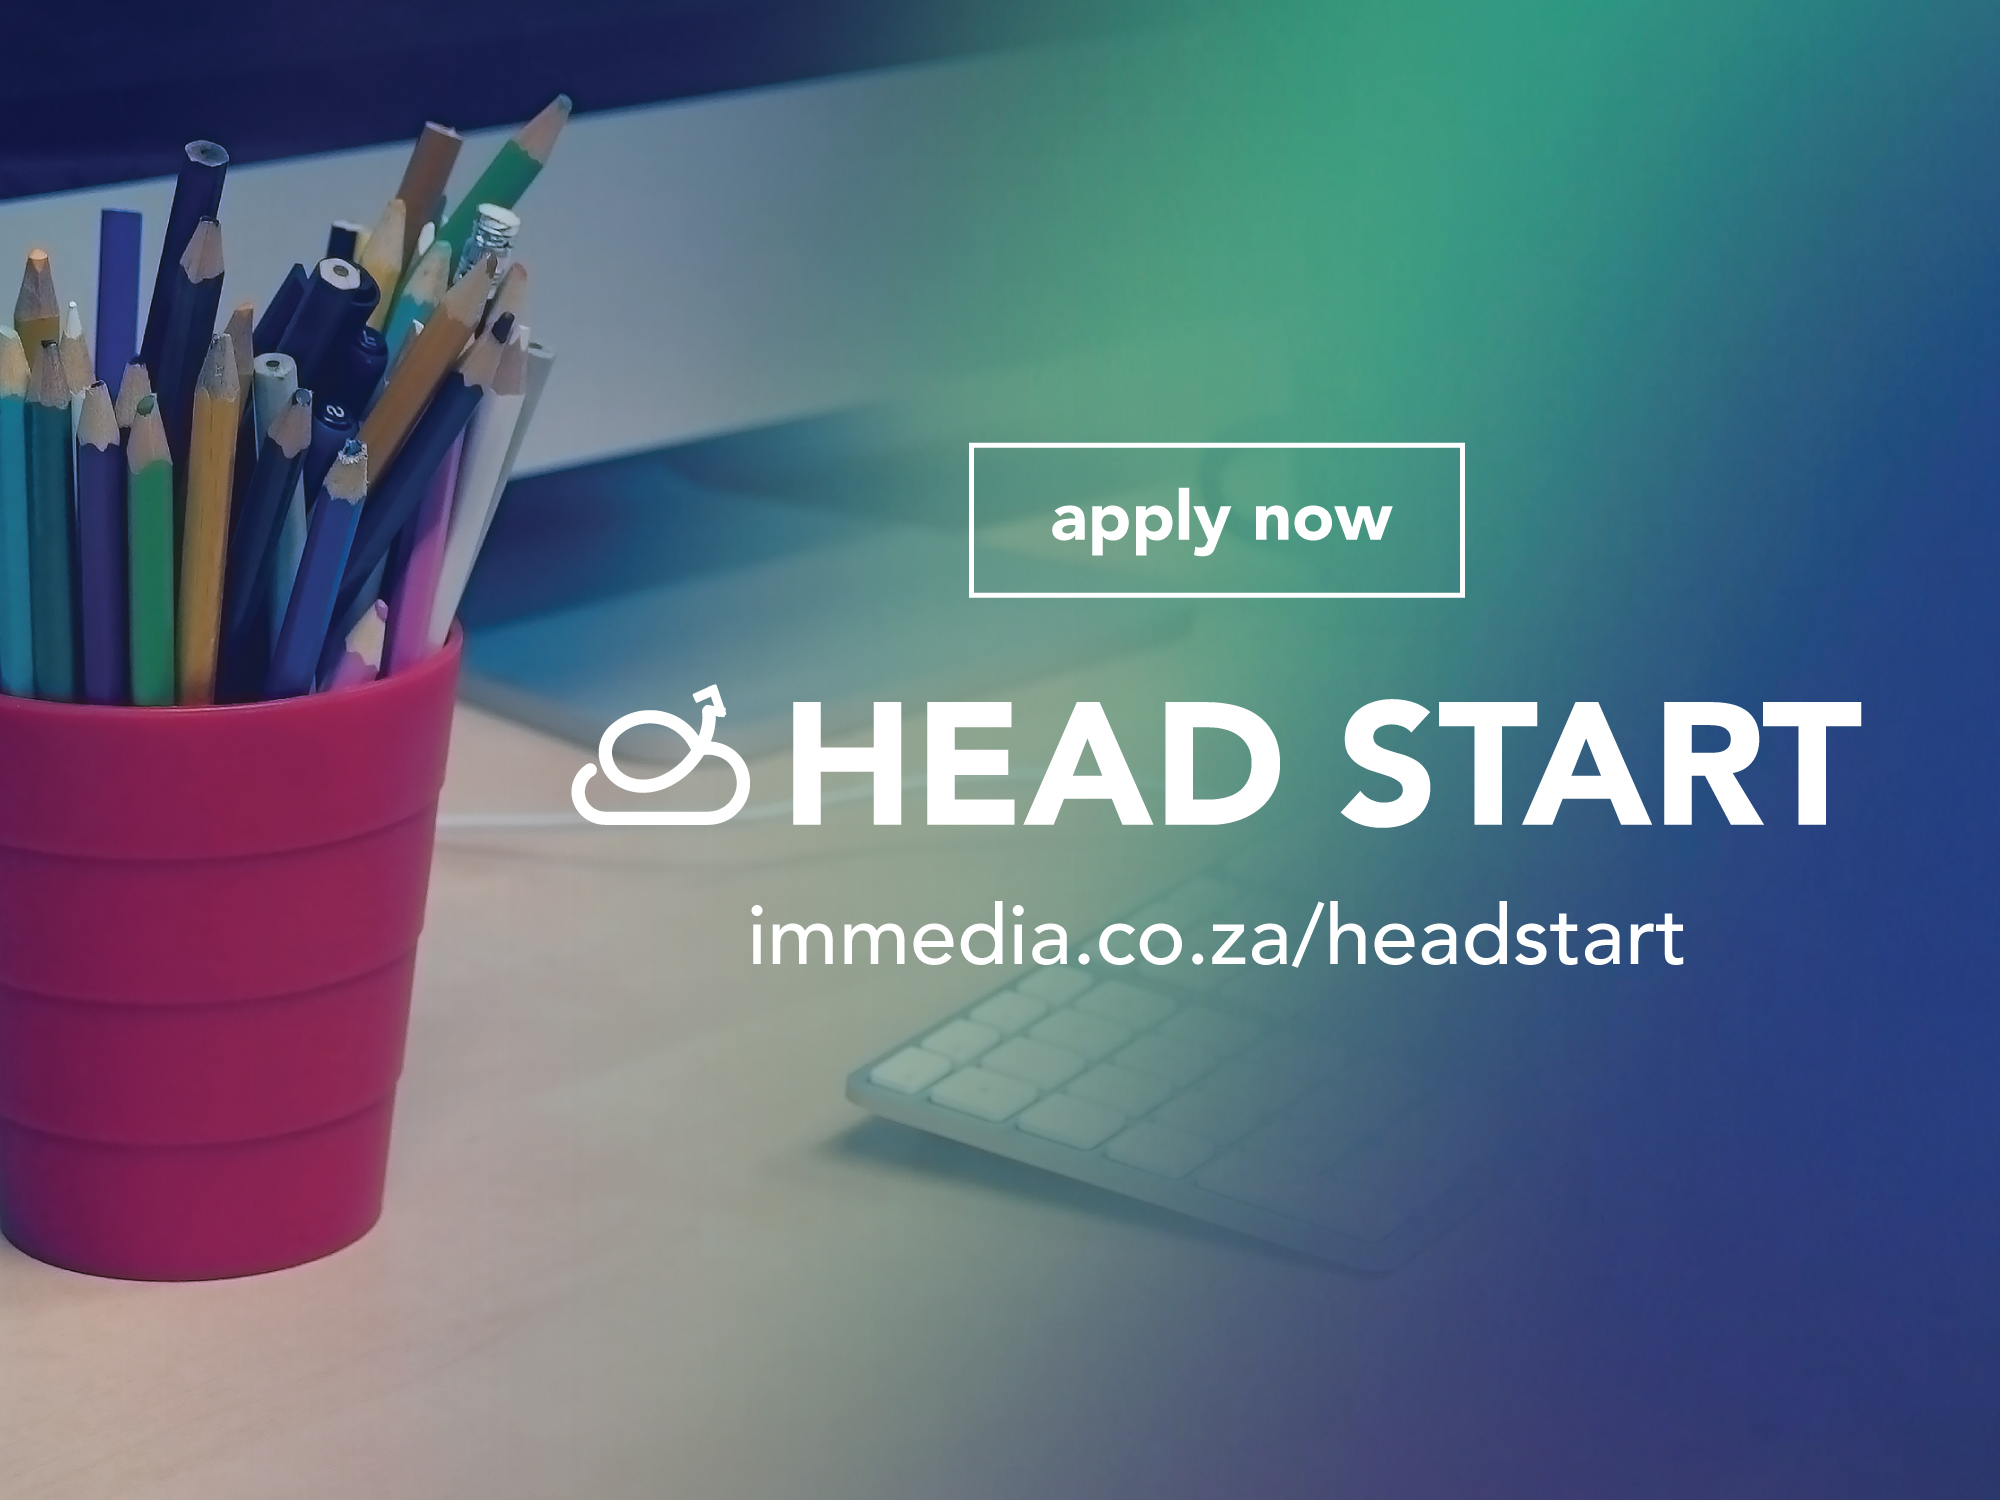 Head Start at immedia